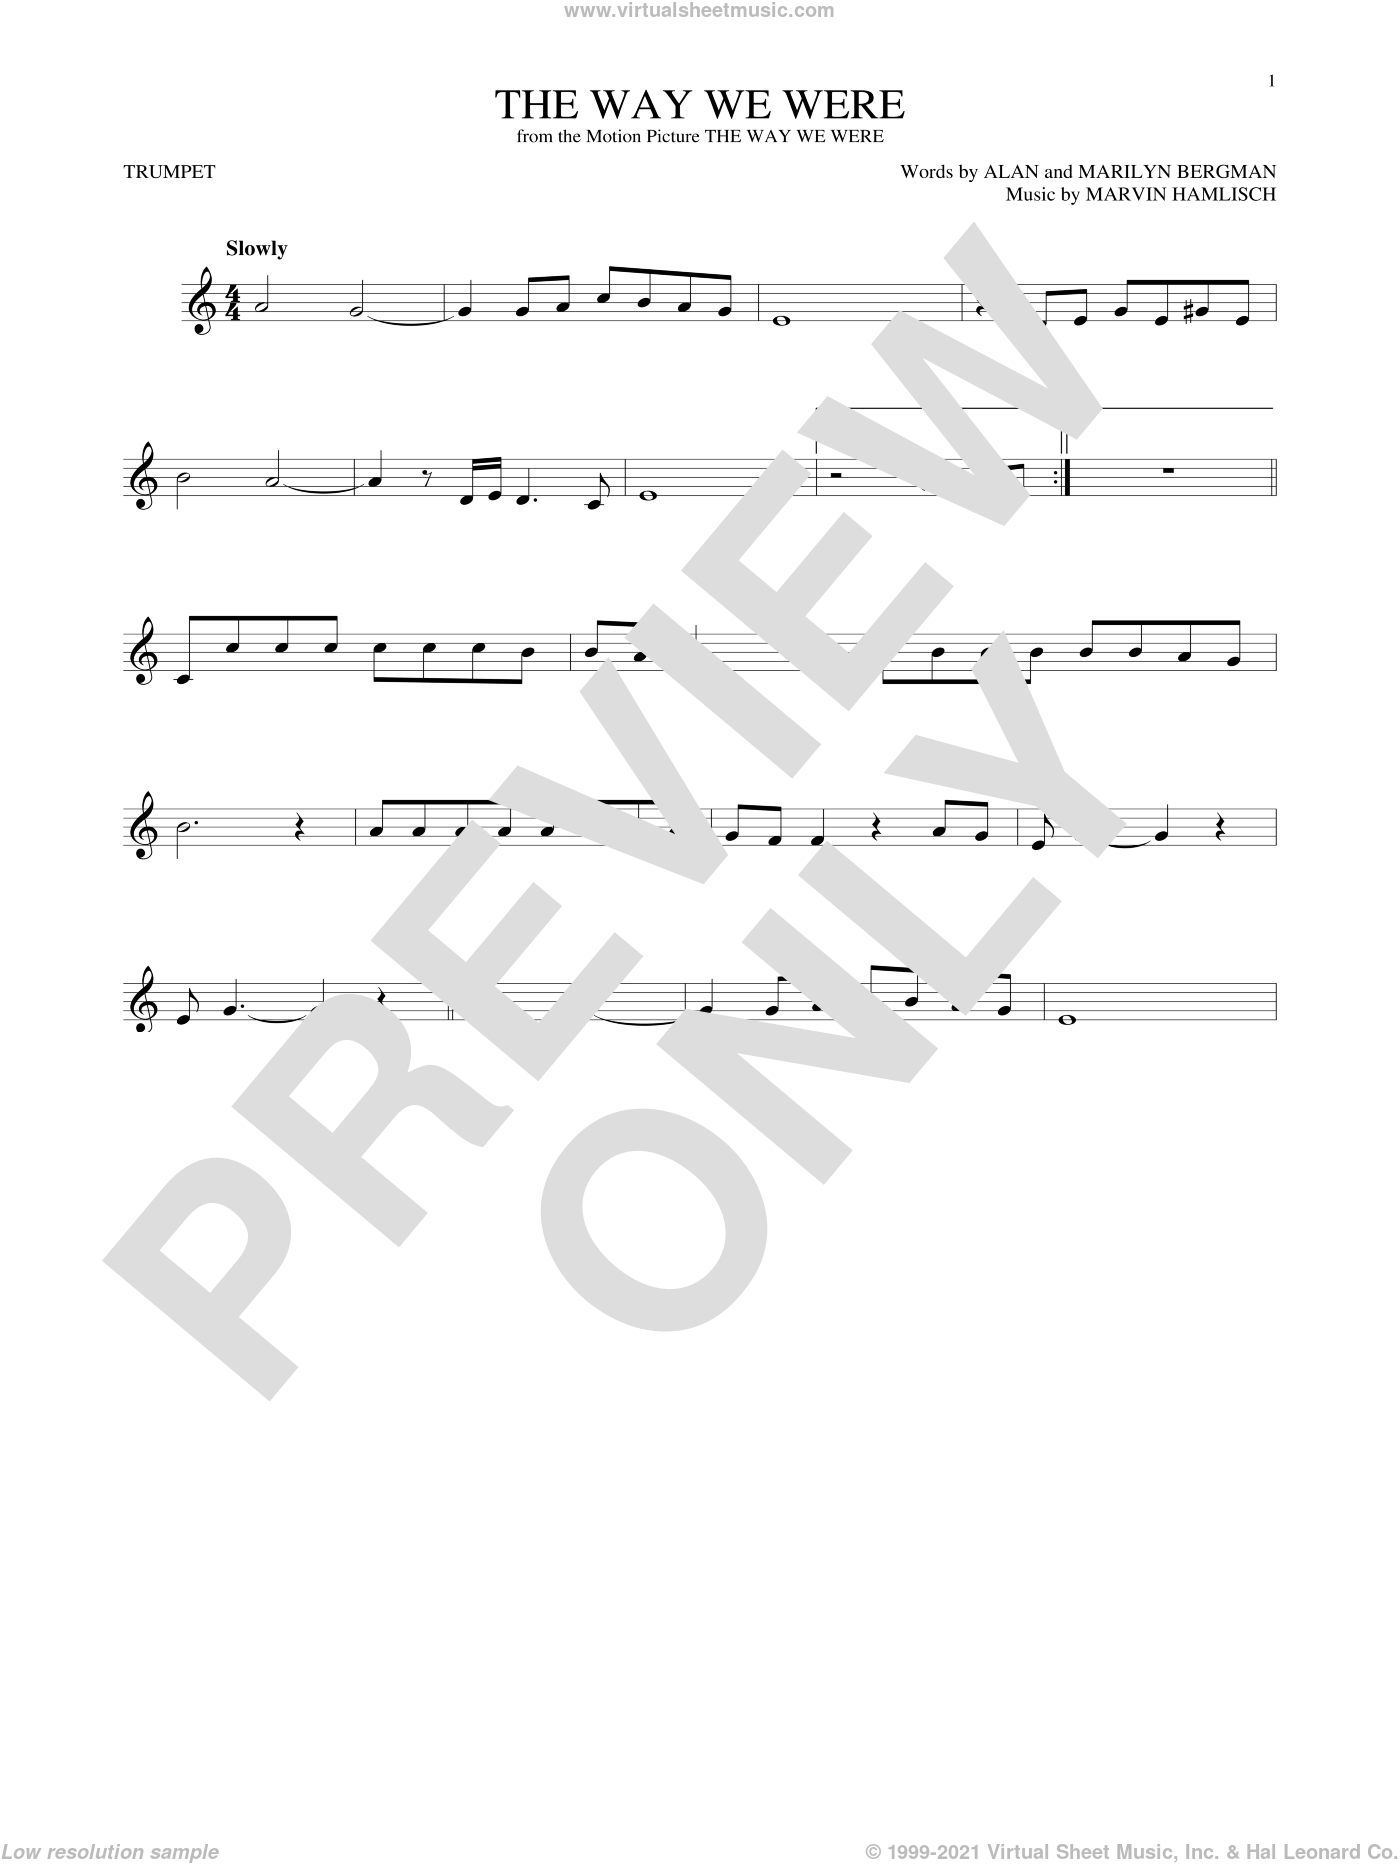 The Way We Were sheet music for trumpet solo by Marvin Hamlisch, Barbra Streisand, Alan Bergman and Marilyn Bergman. Score Image Preview.